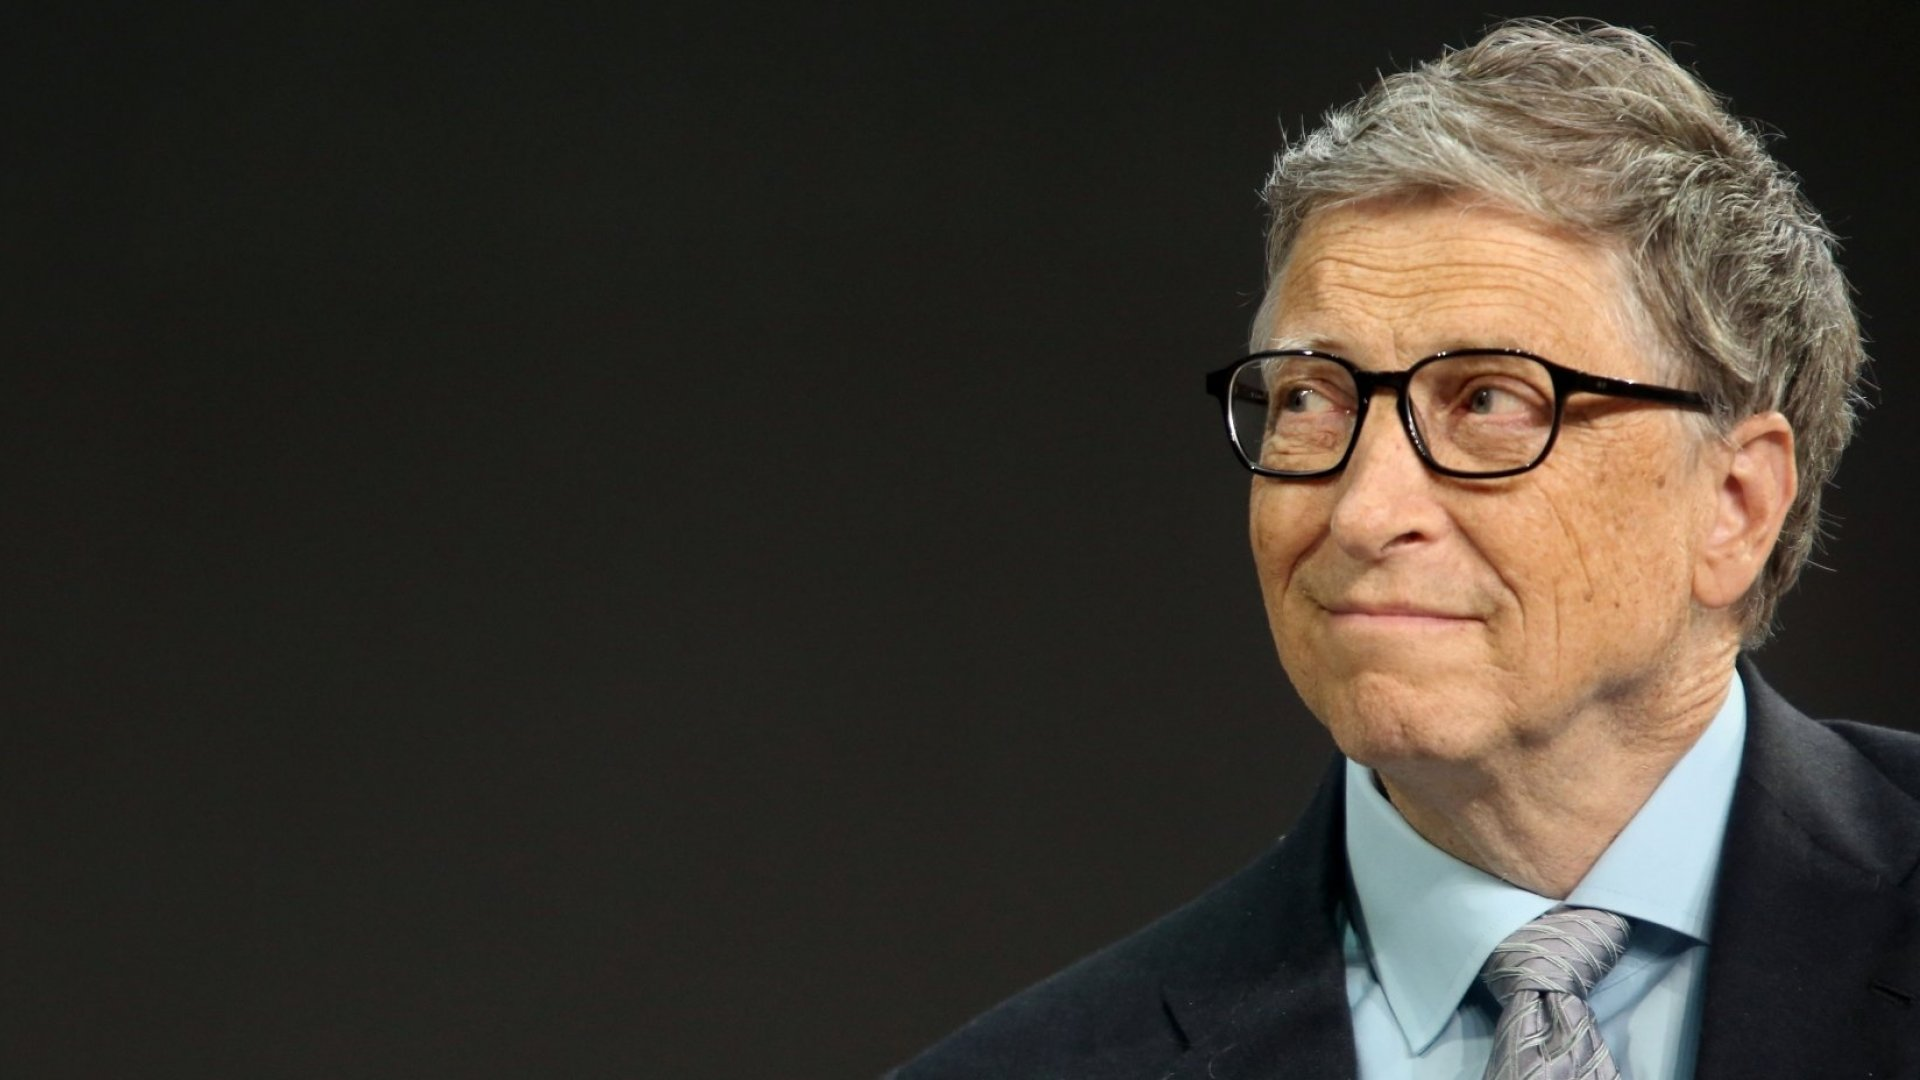 Bill Gates Just Expressed His Massive Frustration With How People Think. Then Elon Musk Joined In